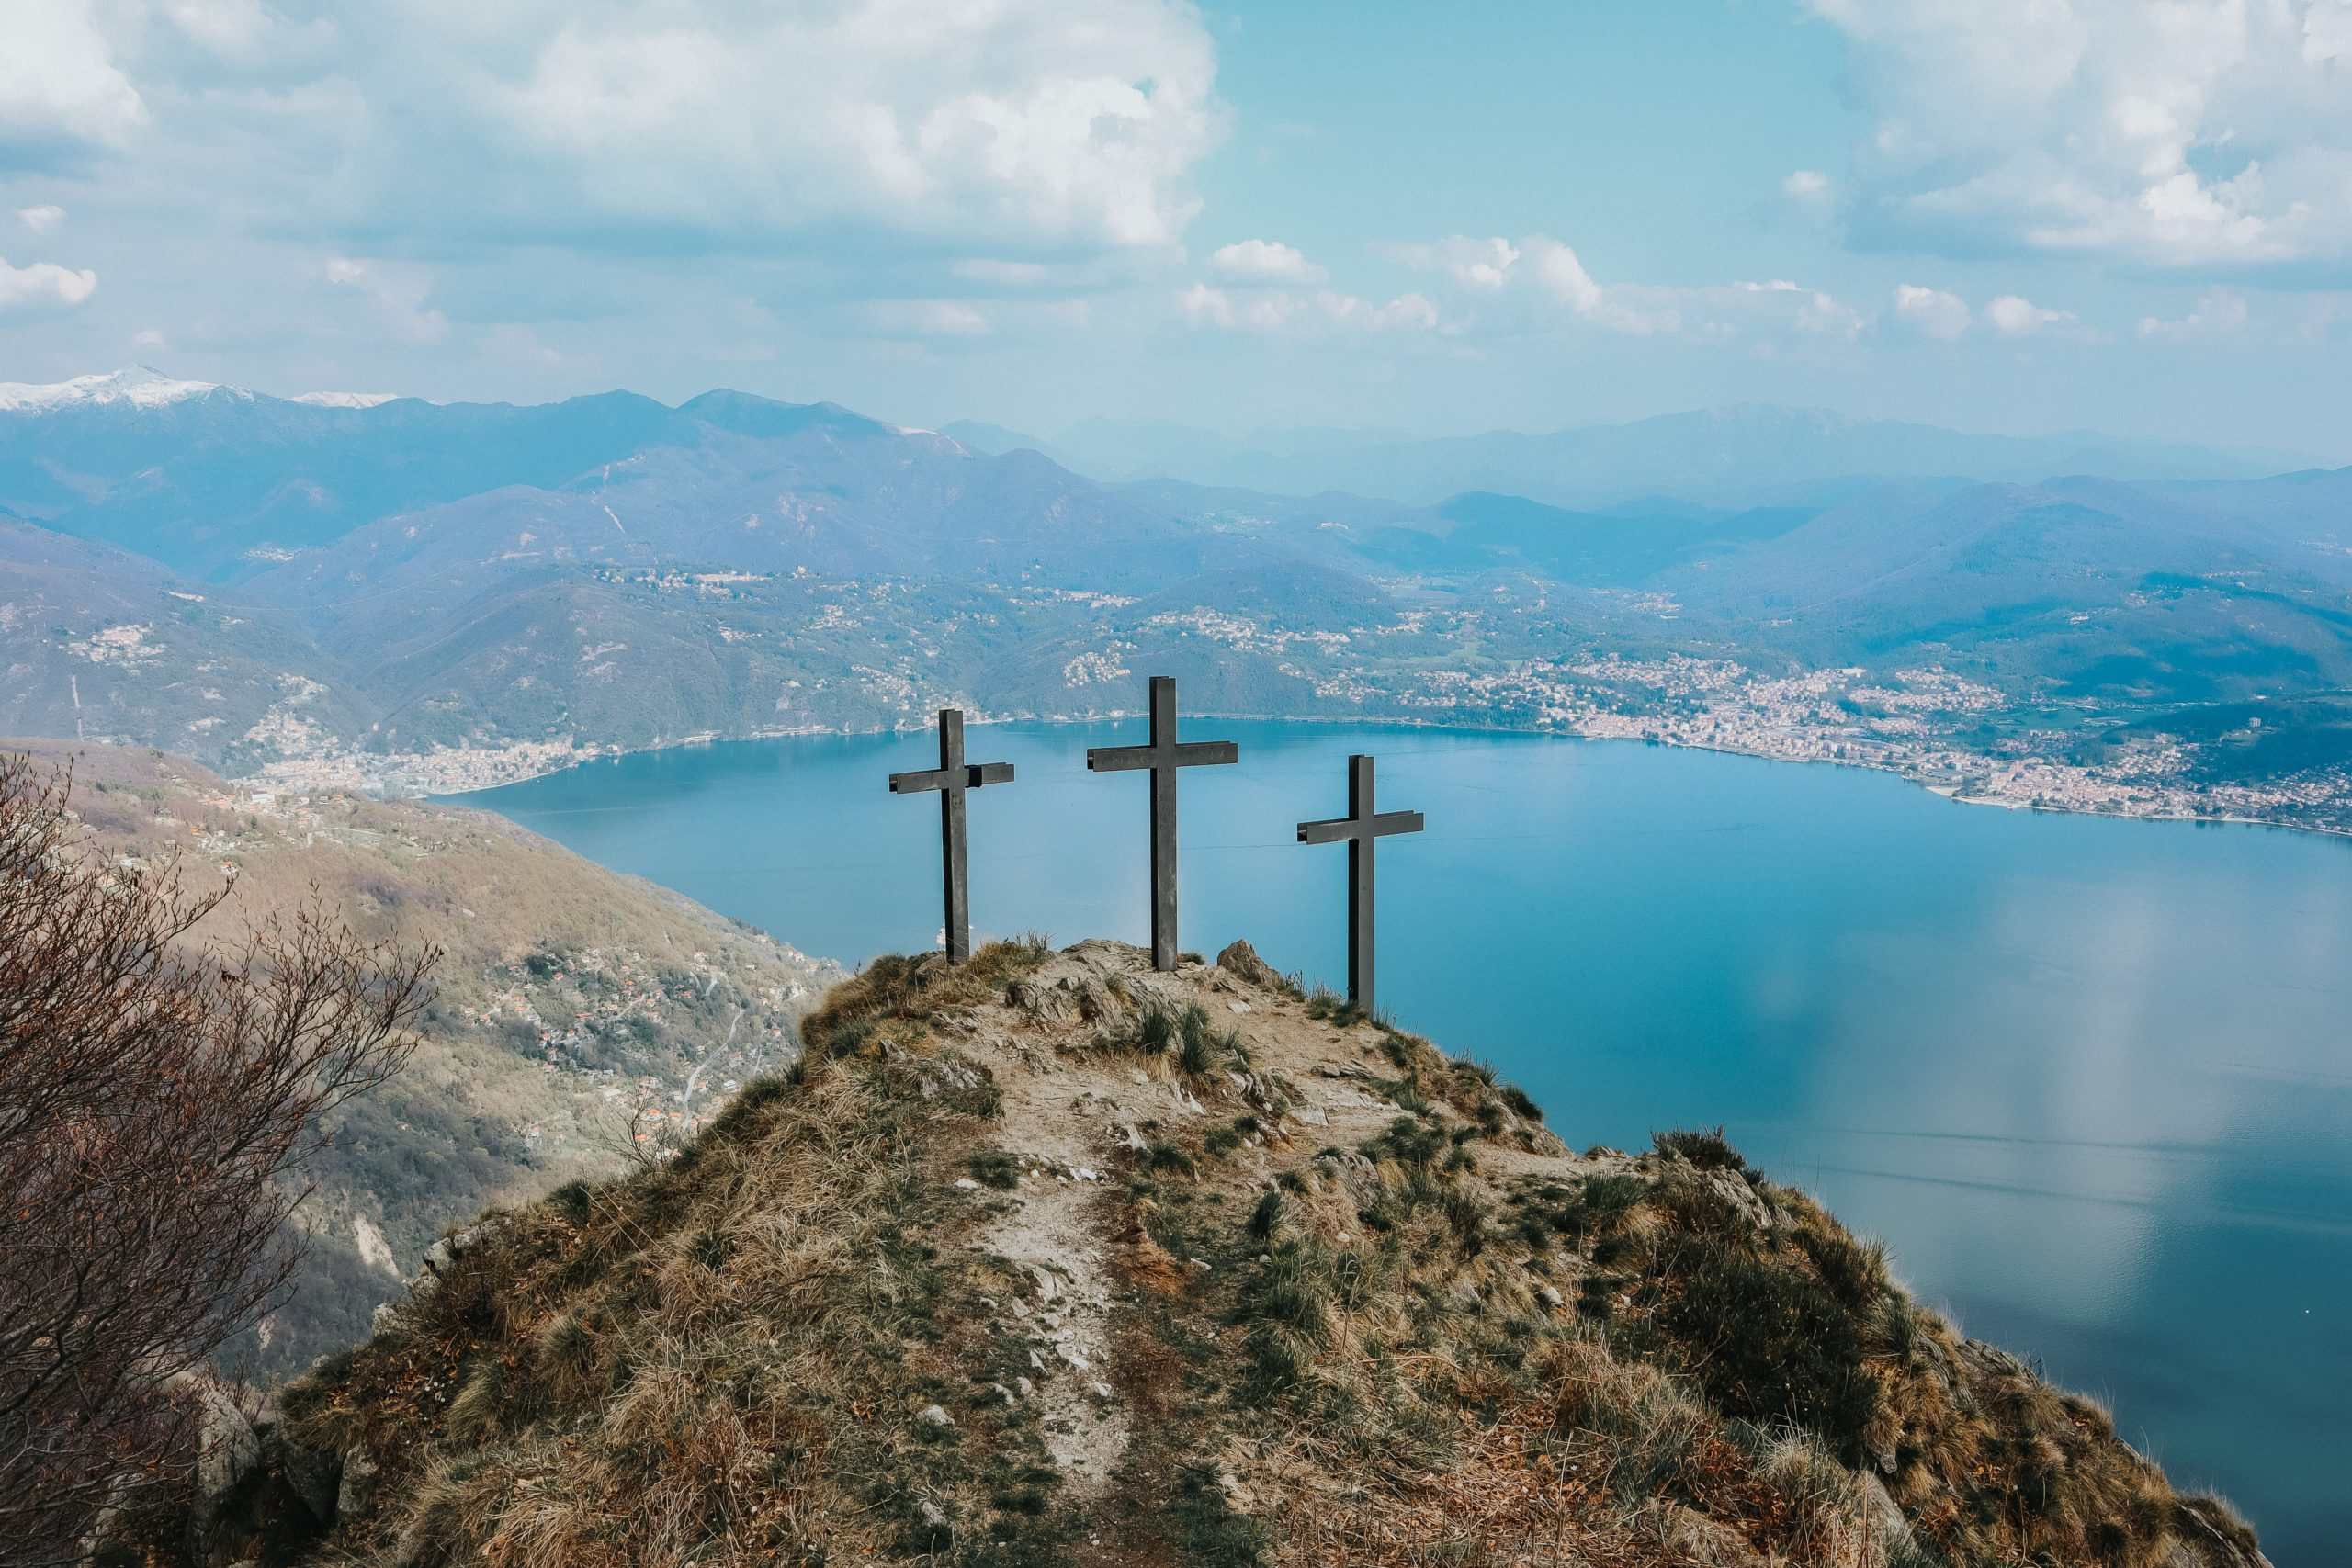 Three crosses on a mountain